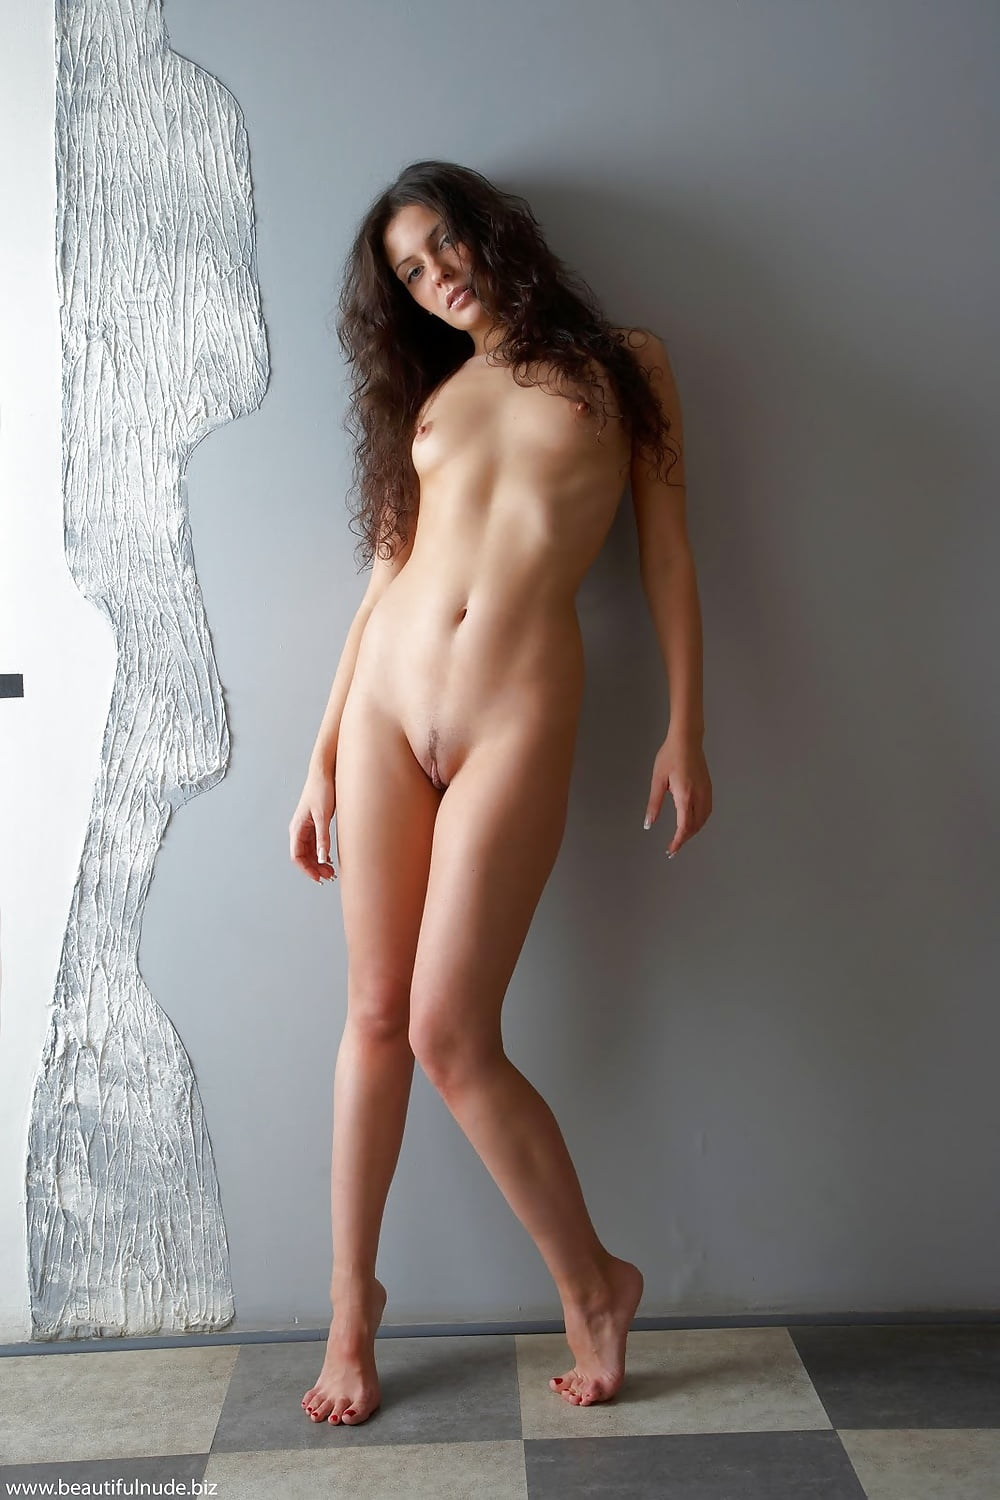 Indo girl standing naked, petite holly naked